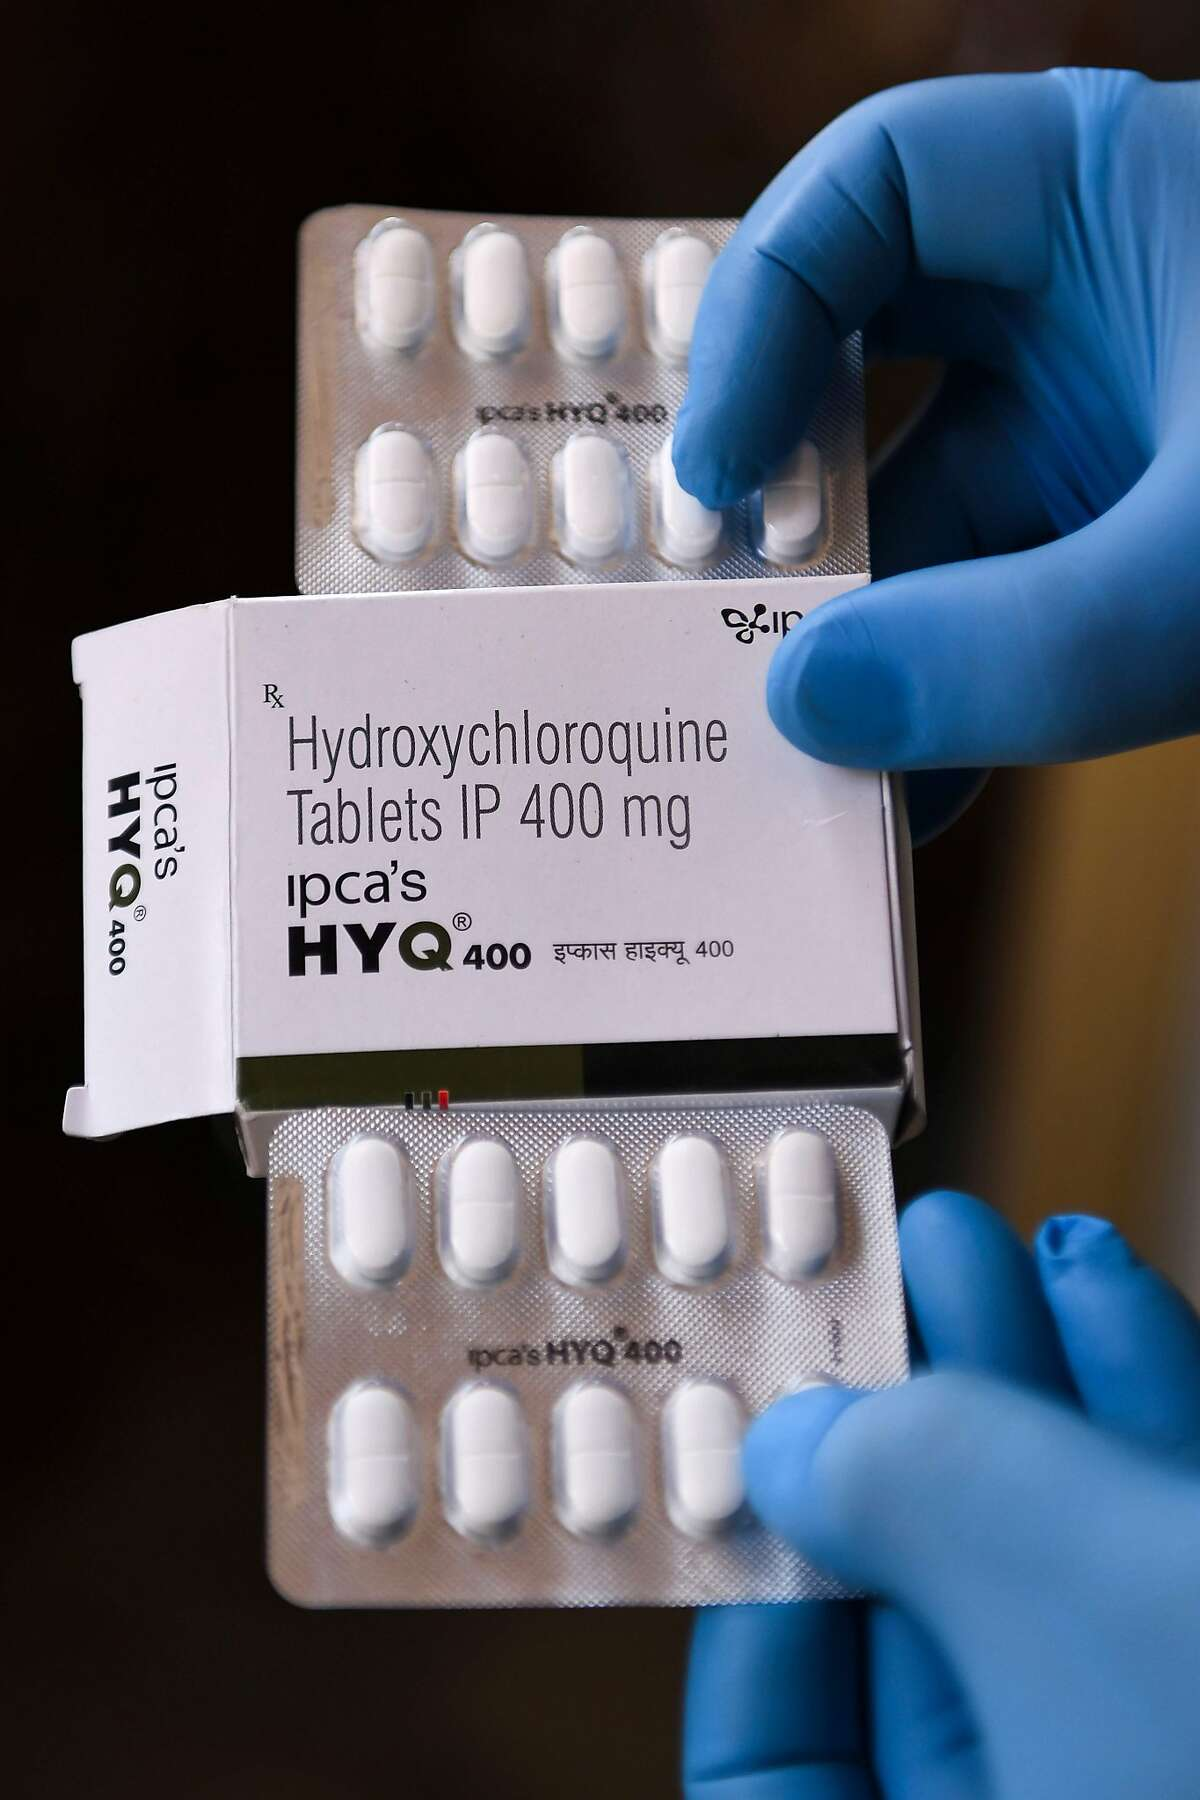 (FILES) In this file photo taken on April 26, 2020 a vendor shows hydroxychloroquine (HCQ) tablets at a pharmacy in Amritsar. - Brazil's health ministry recommended on May 20, 2020 using chloroquine and hydroxychloroquine to treat even mild and moderate cases of COVID-19, something President Jair Bolsonaro has pushed for despite a lack of conclusive evidence of their effectiveness. (Photo by NARINDER NANU / AFP) (Photo by NARINDER NANU/AFP via Getty Images)